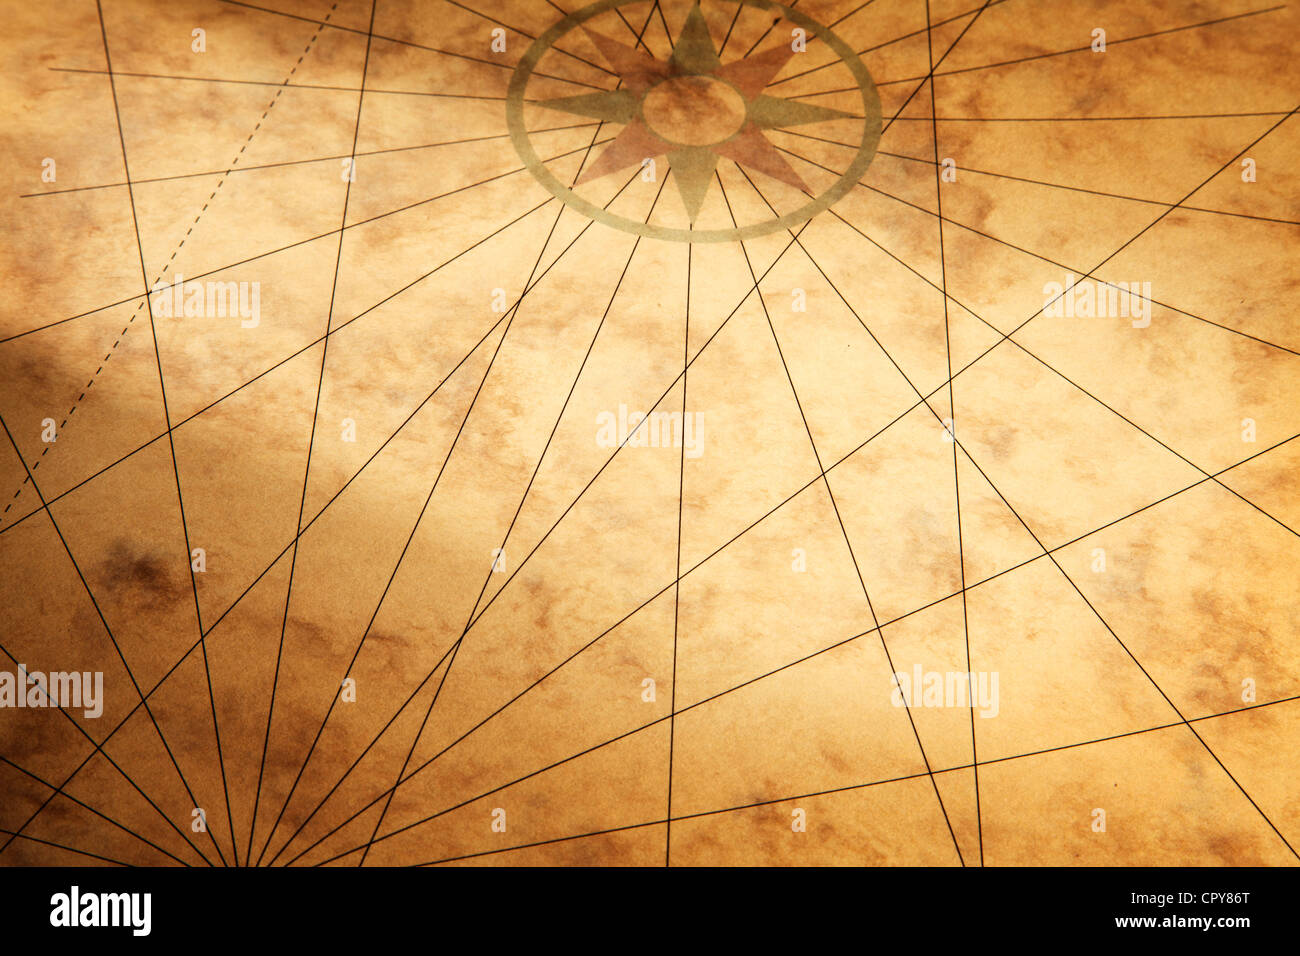 Background image with old paper texture and compass - Stock Image